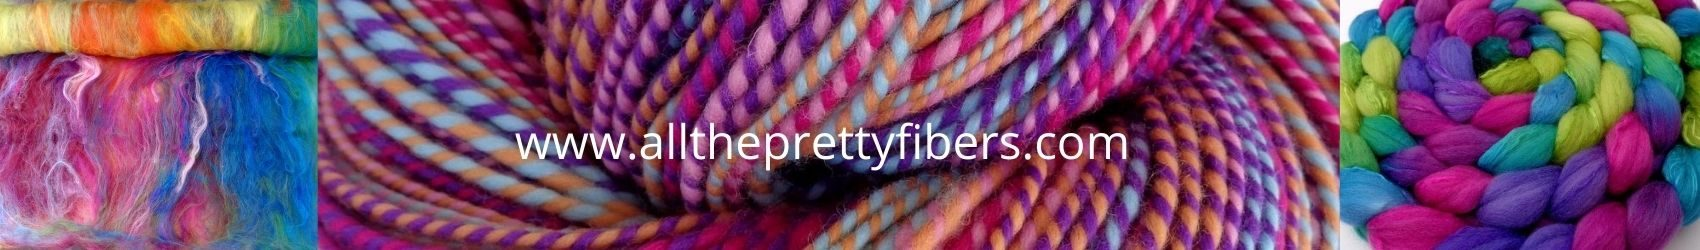 All The Pretty Fibers